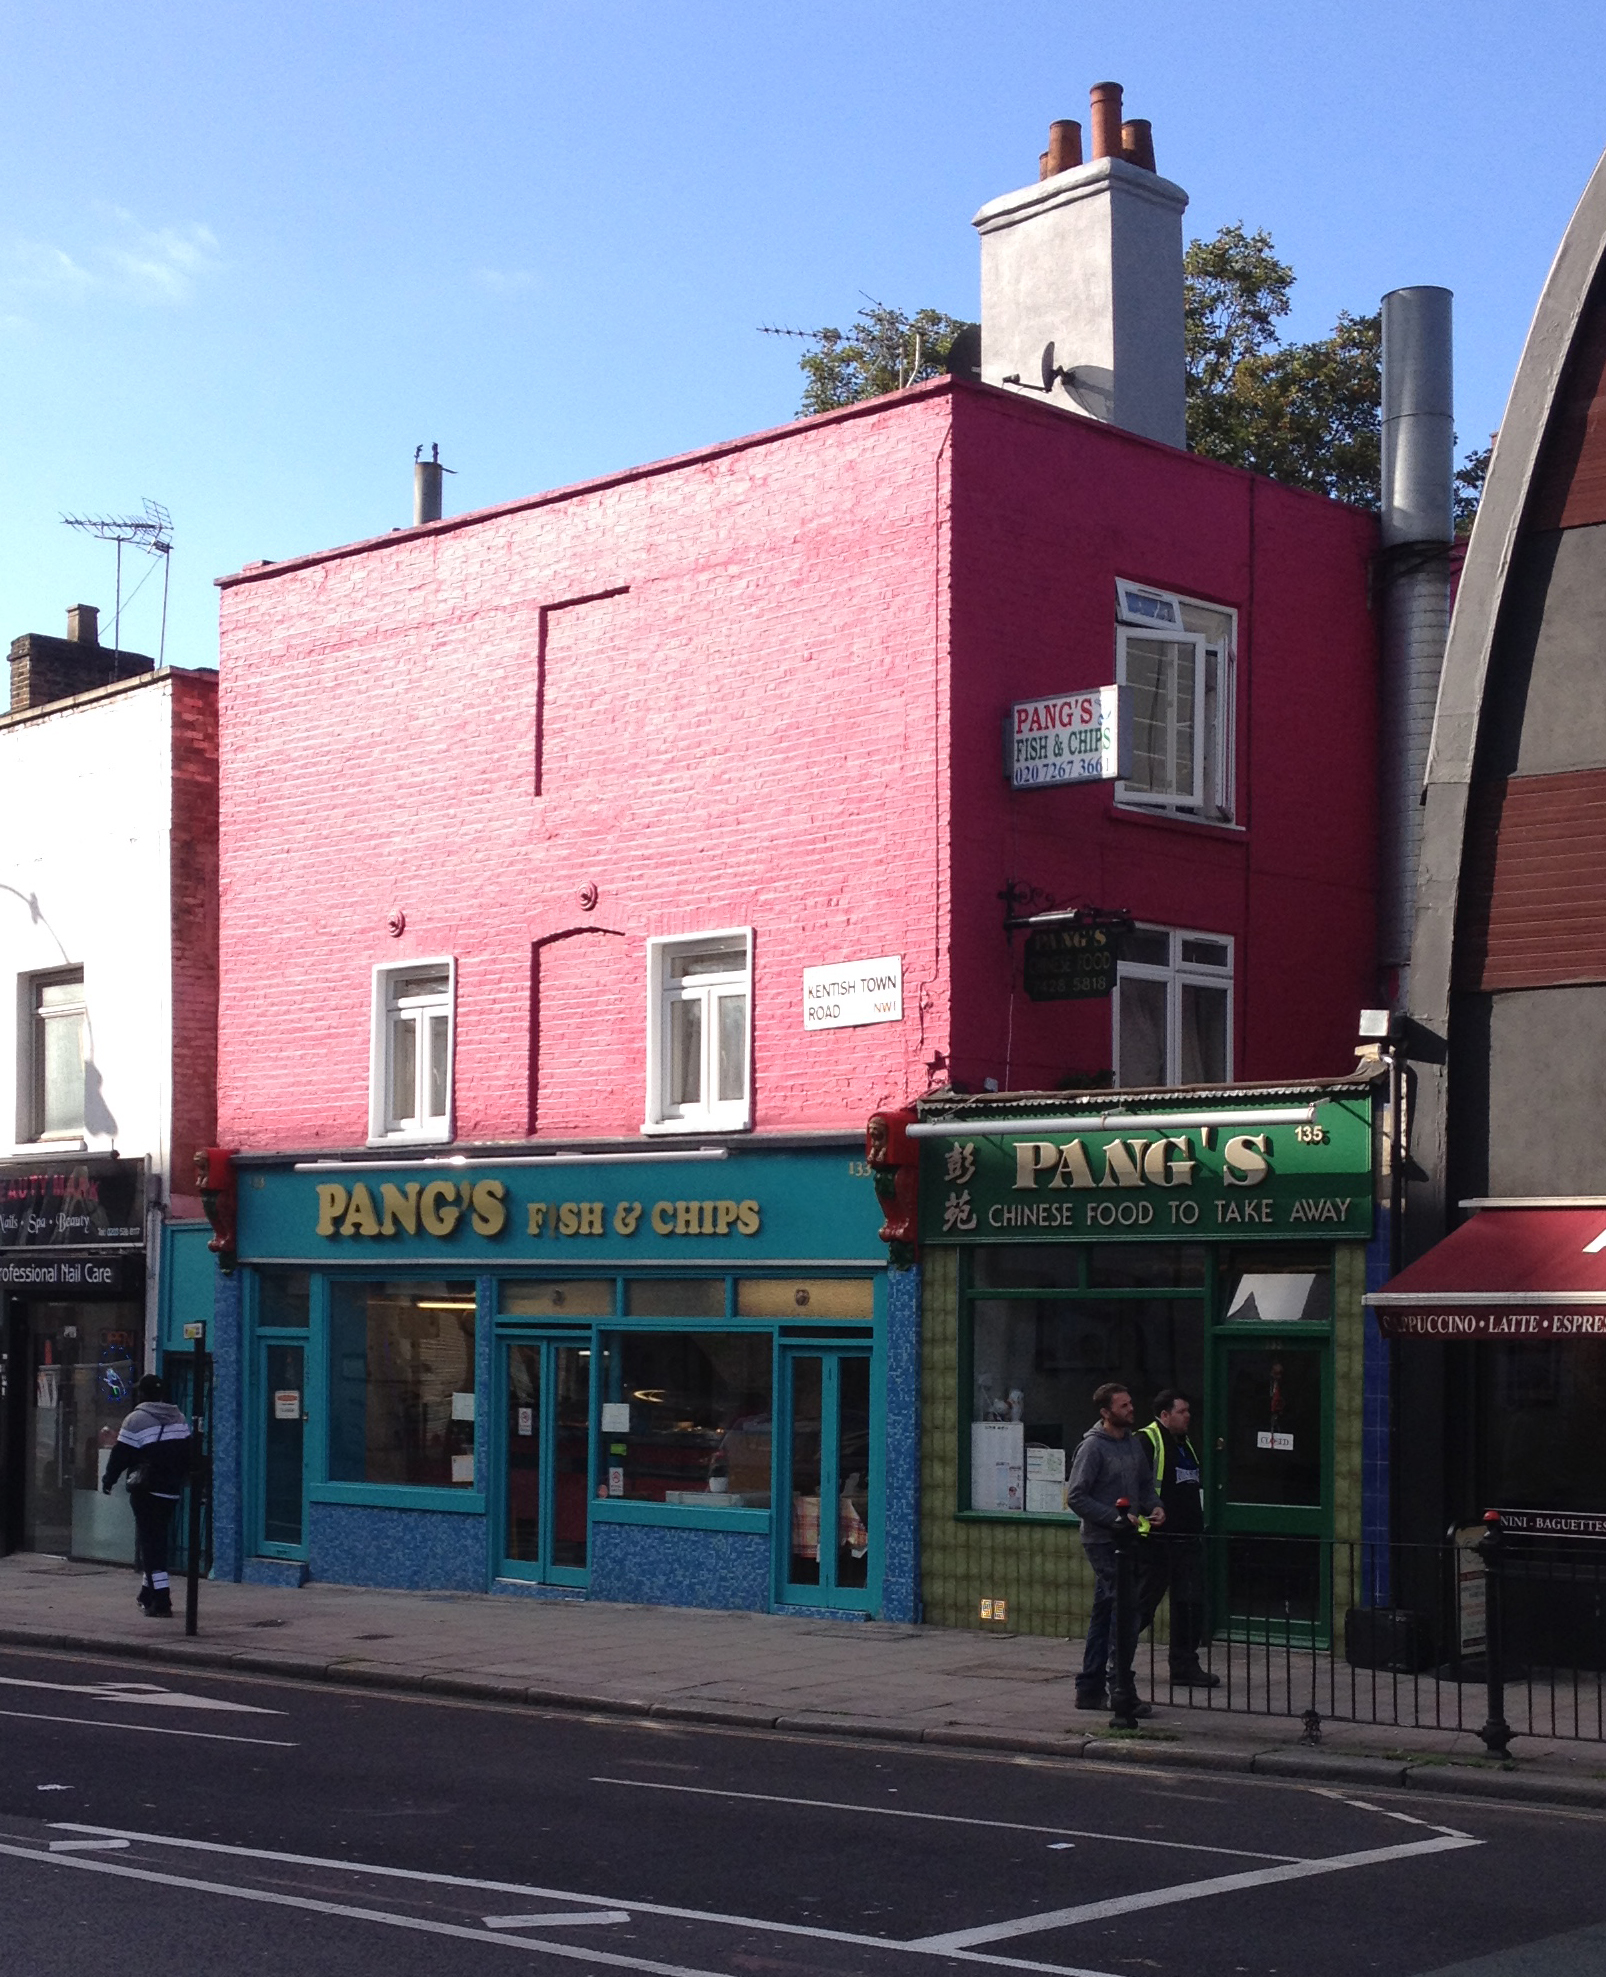 Pang's: one of the oldest buildings in Kentish Town